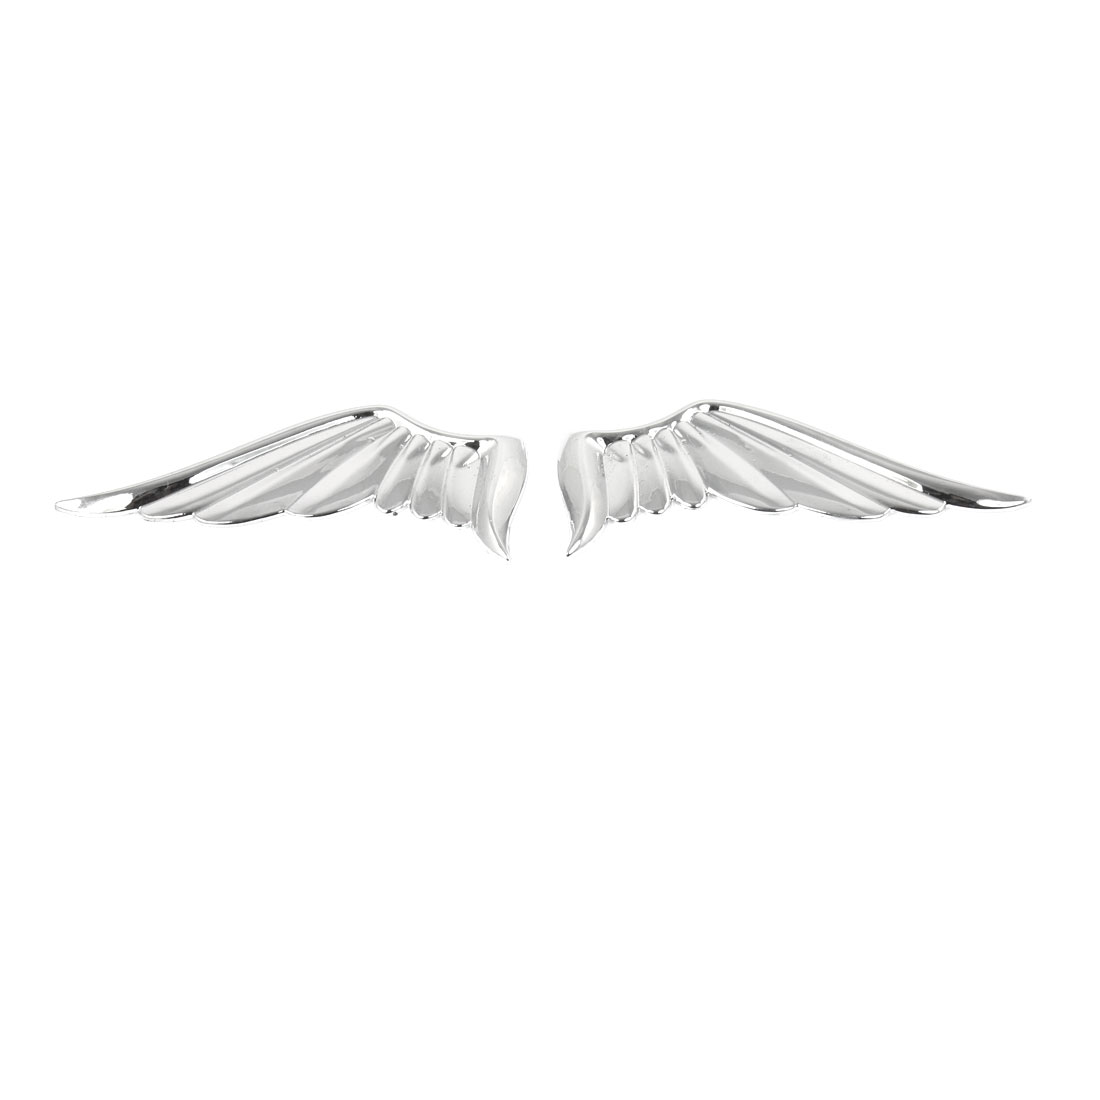 Pair Silver Tone Metal Wings Style Decorative Sticker Decal for Car